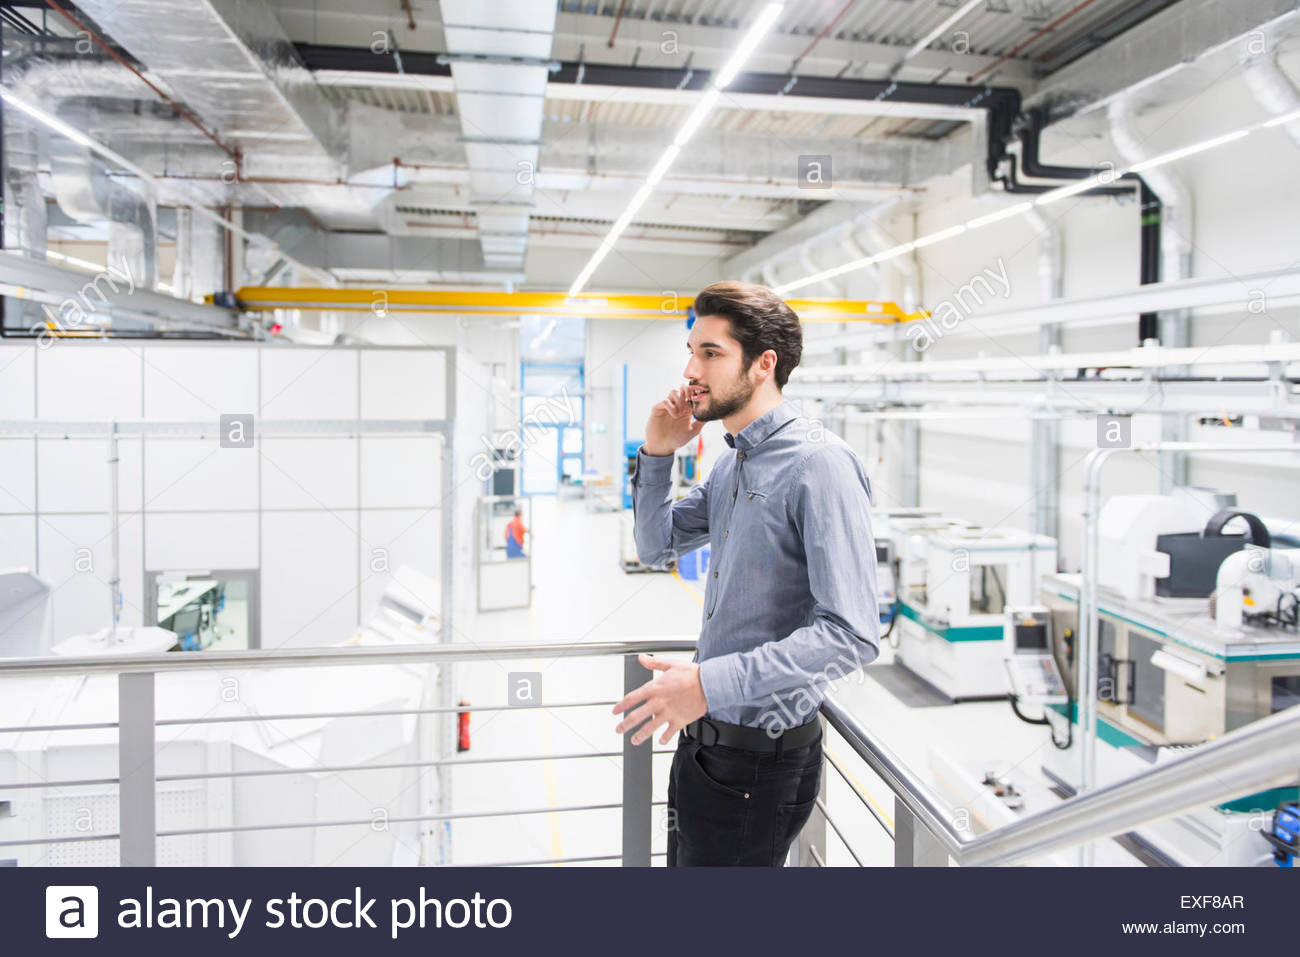 Male worker using mobile phone in tool manufacturing plant - Stock Image